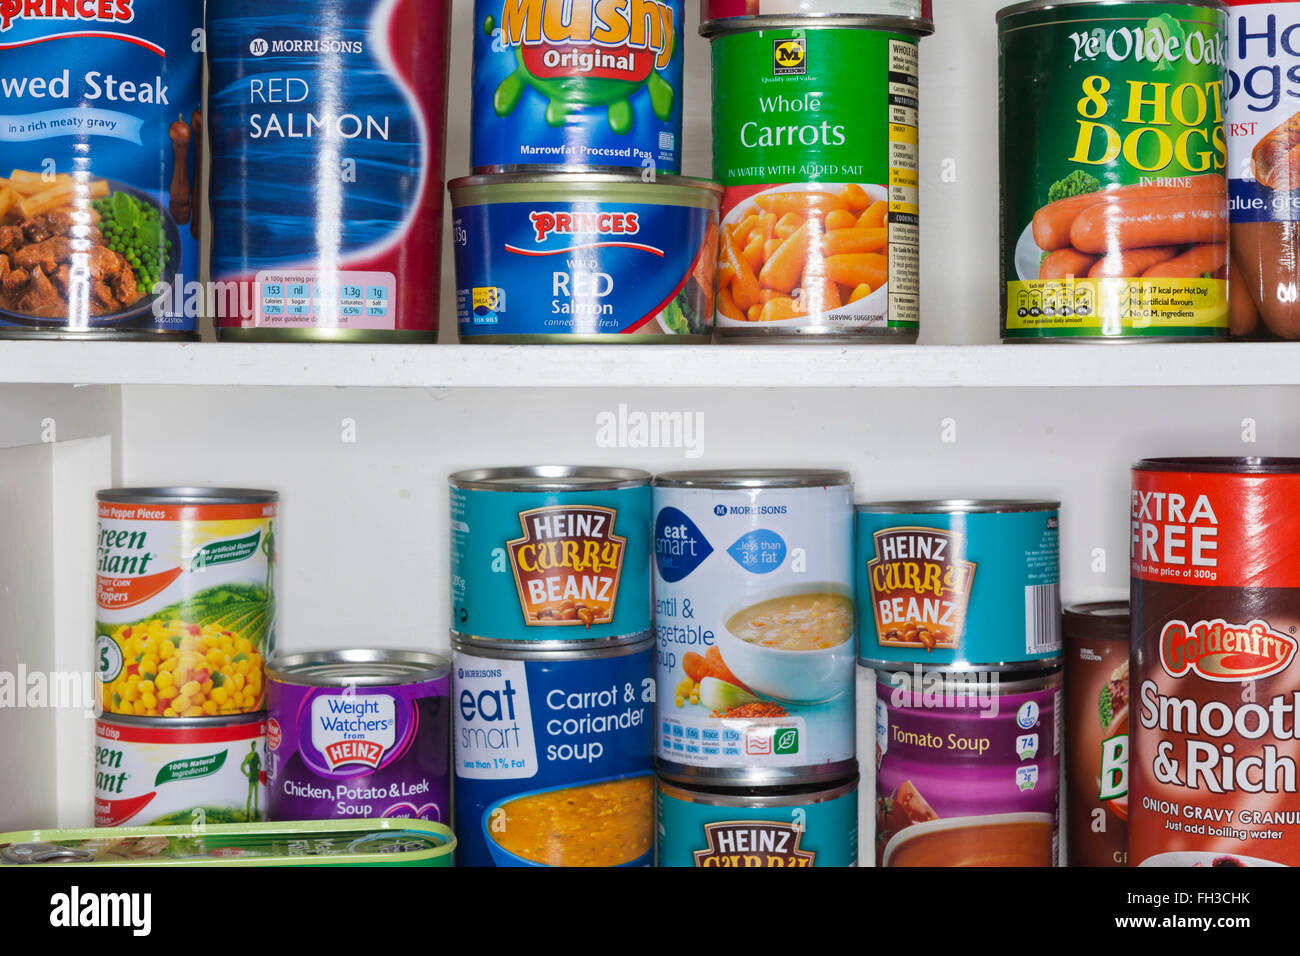 Old glass fronted kitchen cabiinet with tins of food. - Stock Image